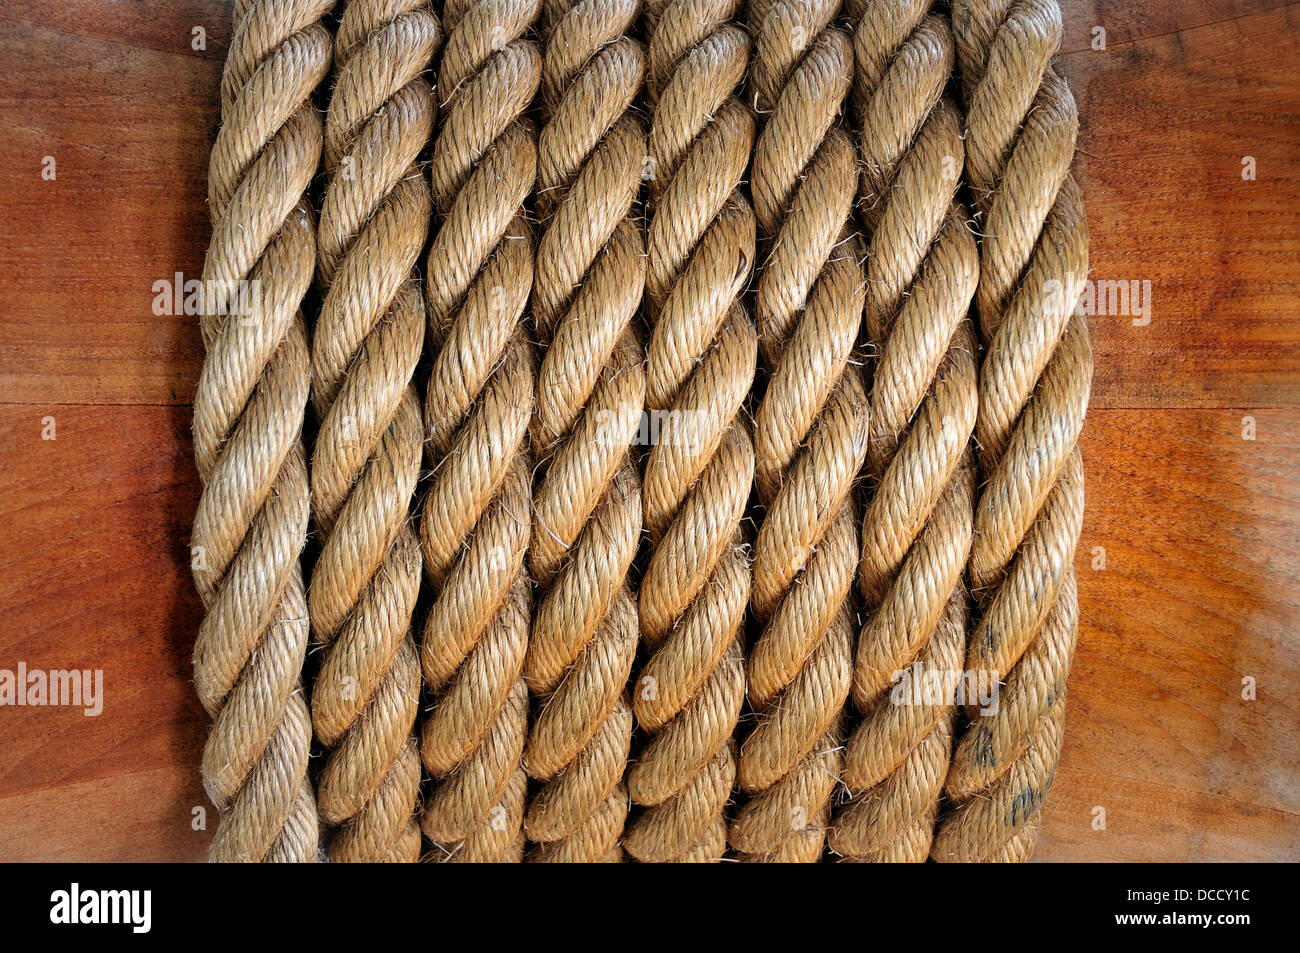 Chatham, Kent, England, UK. Chatham Historic Dockyard. HMS Gannet - rope wound around the ship's wheel - Stock Image